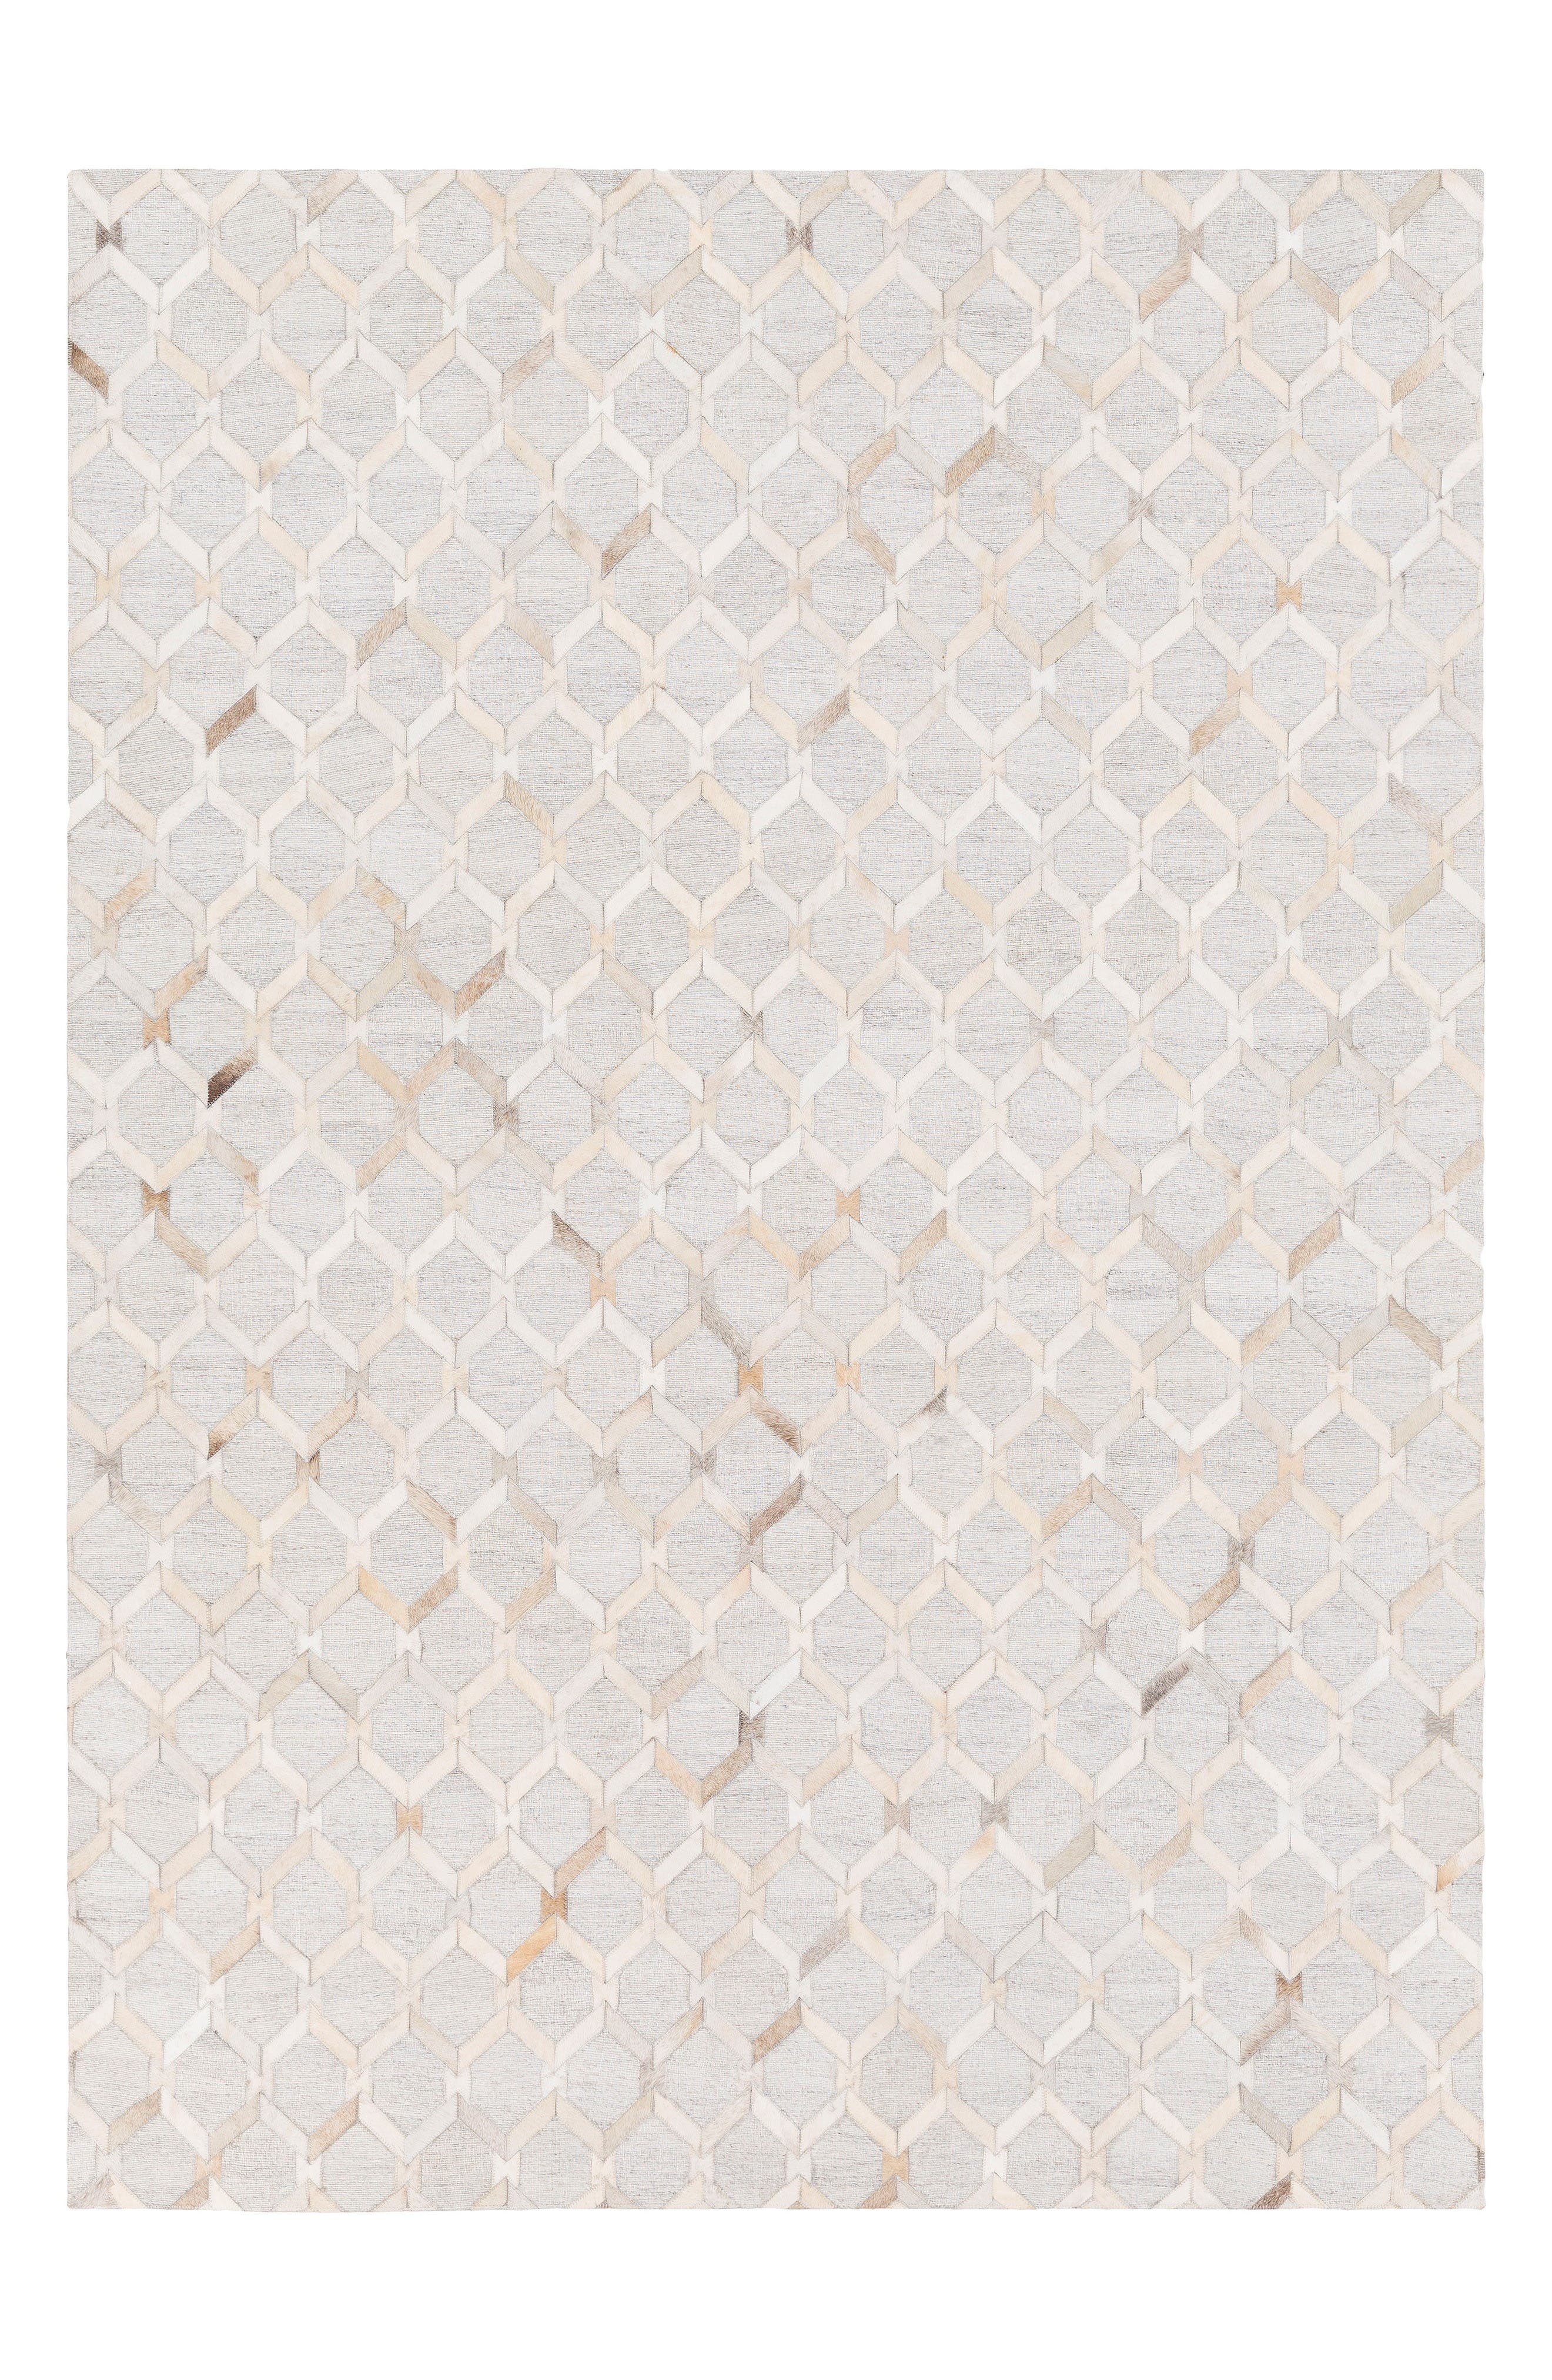 Medora Laura Hand Stitched Rug,                             Main thumbnail 1, color,                             Ivory